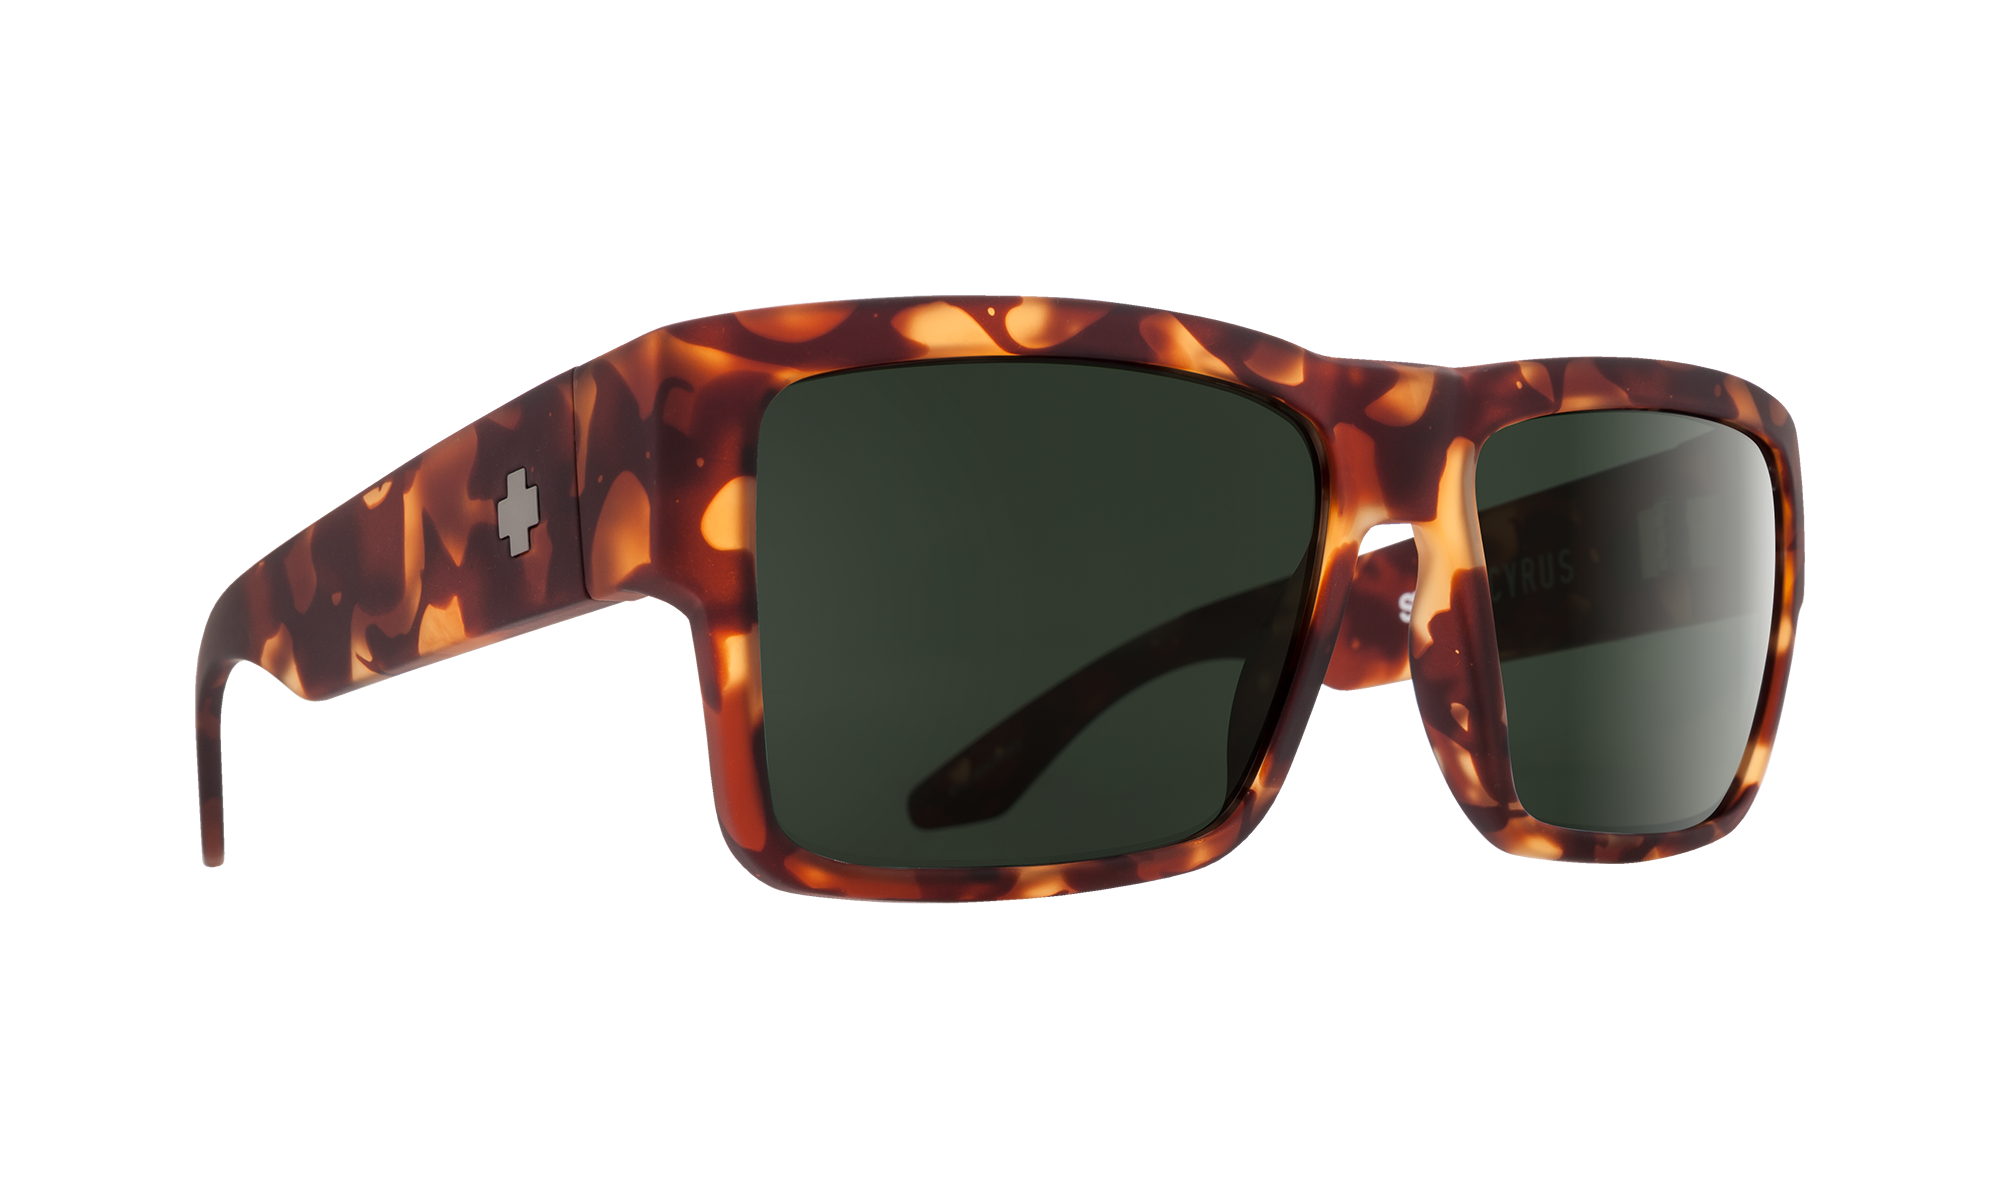 itemDesc CYRUS SOFT MATTE CAMO TORT - HAPPY GRAY GREEN is not available for this combination